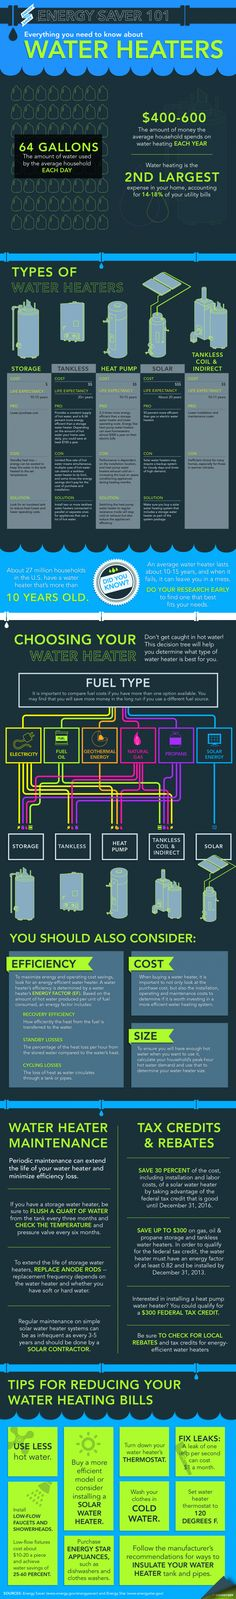 New Energy Saver 101 infographic lays out the different types of water heaters on the market and will help you figure out how to select the best model for your home. Download a high-resolution version of the infographic. | Infographic by Sarah Gerrity.